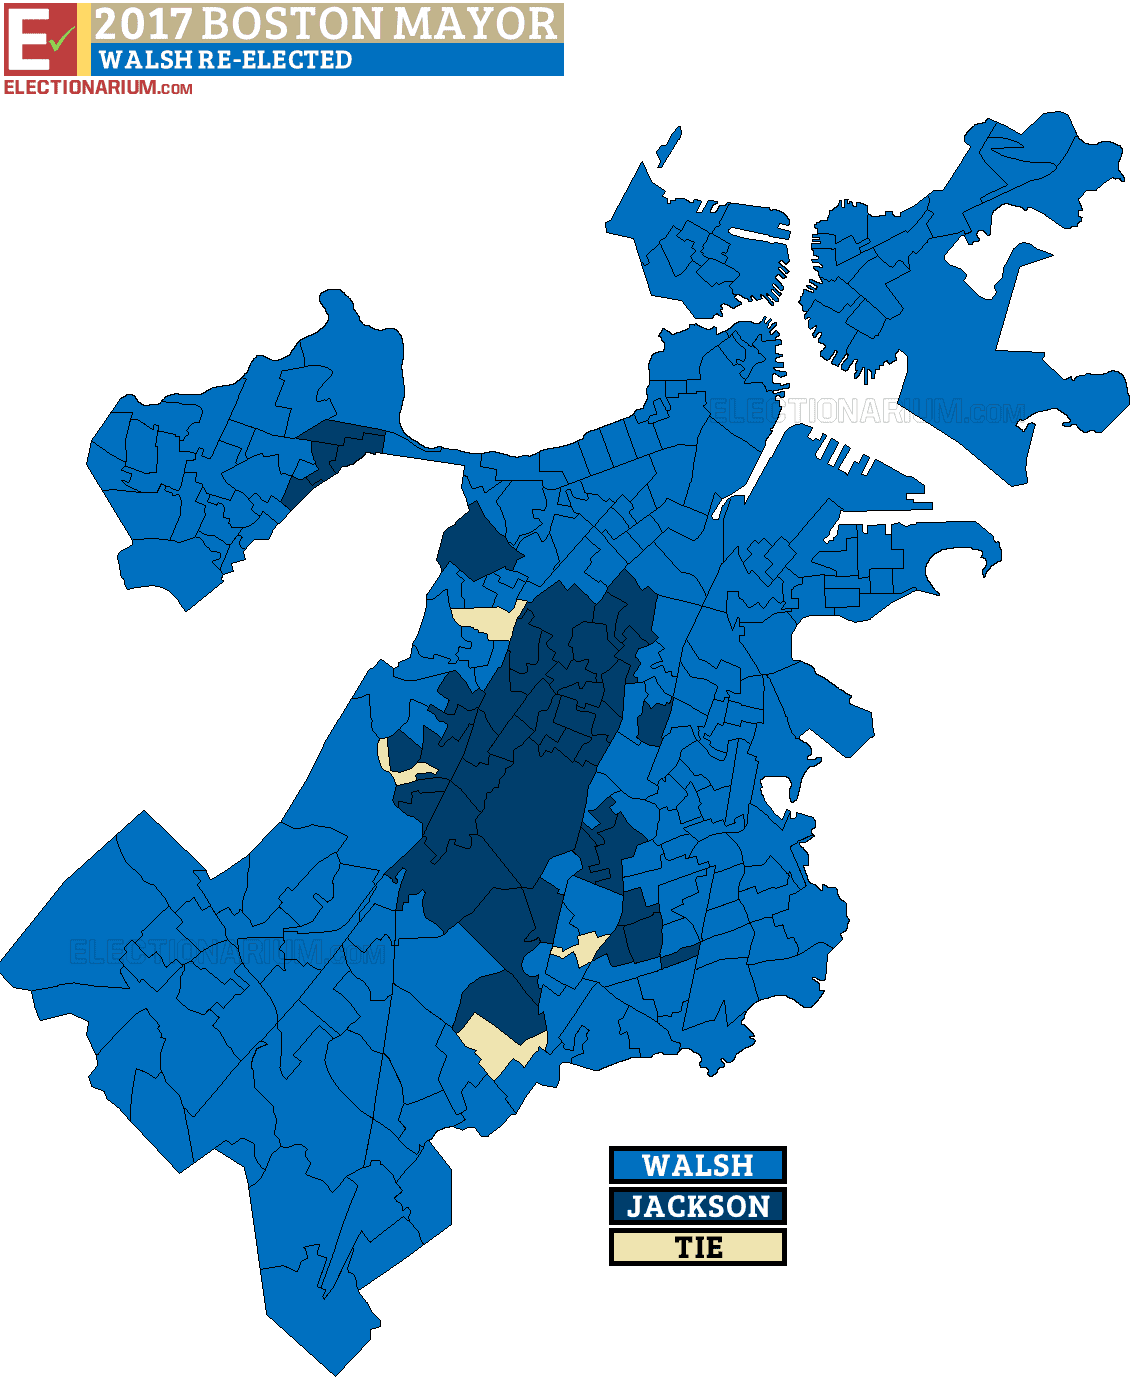 Boston Mayoral Election 2017 results map city precincts